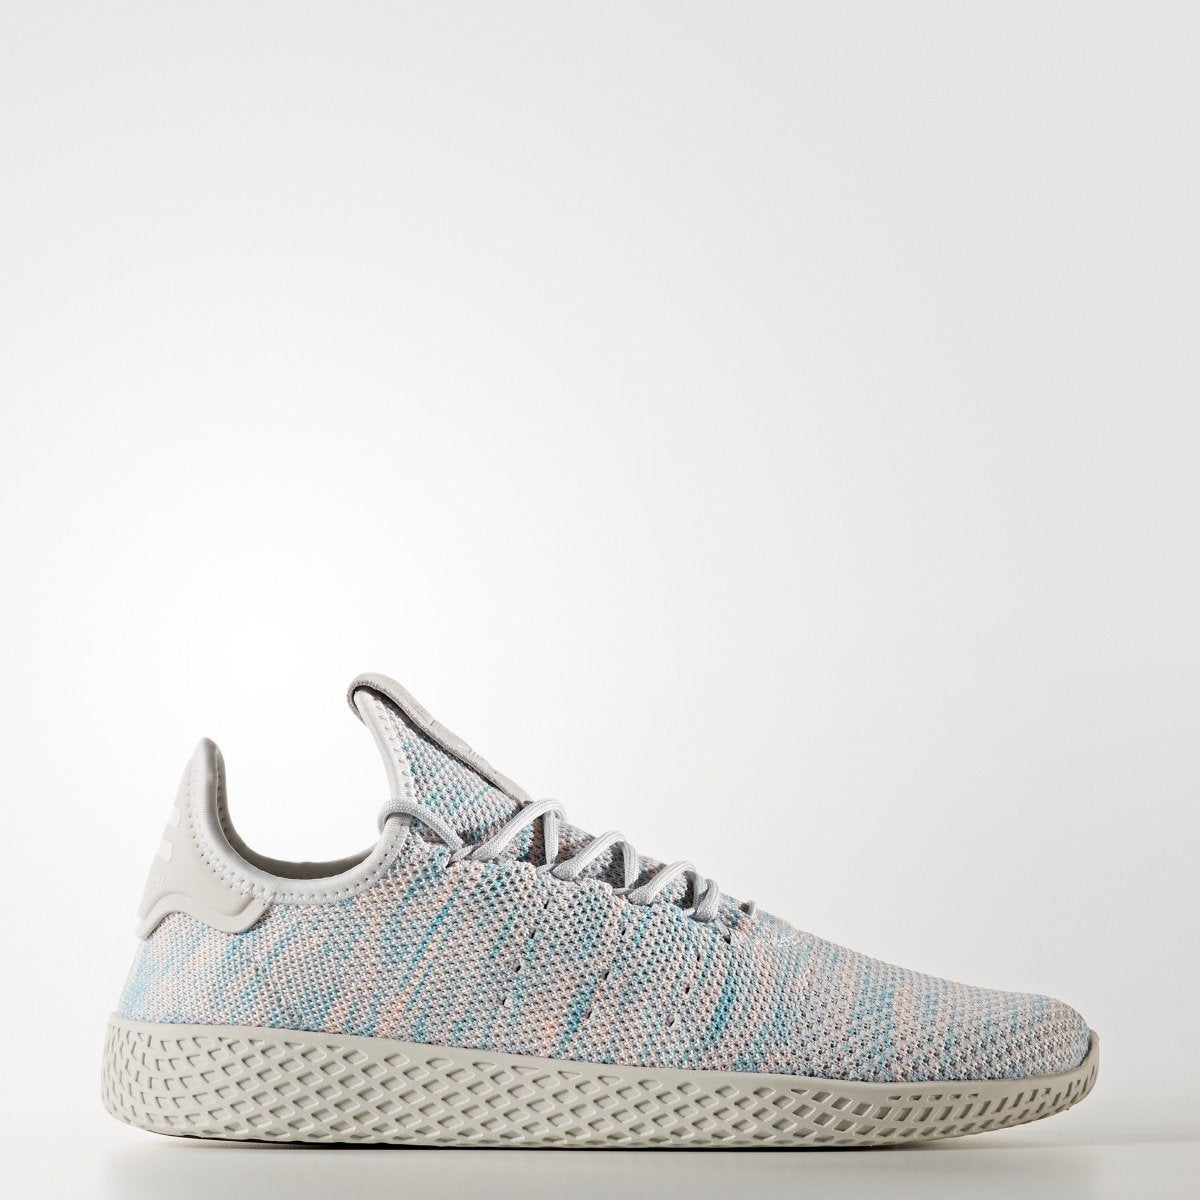 43777b683 Men s adidas Originals Pharrell Williams Tennis Hu Shoes Blue Pink Grey